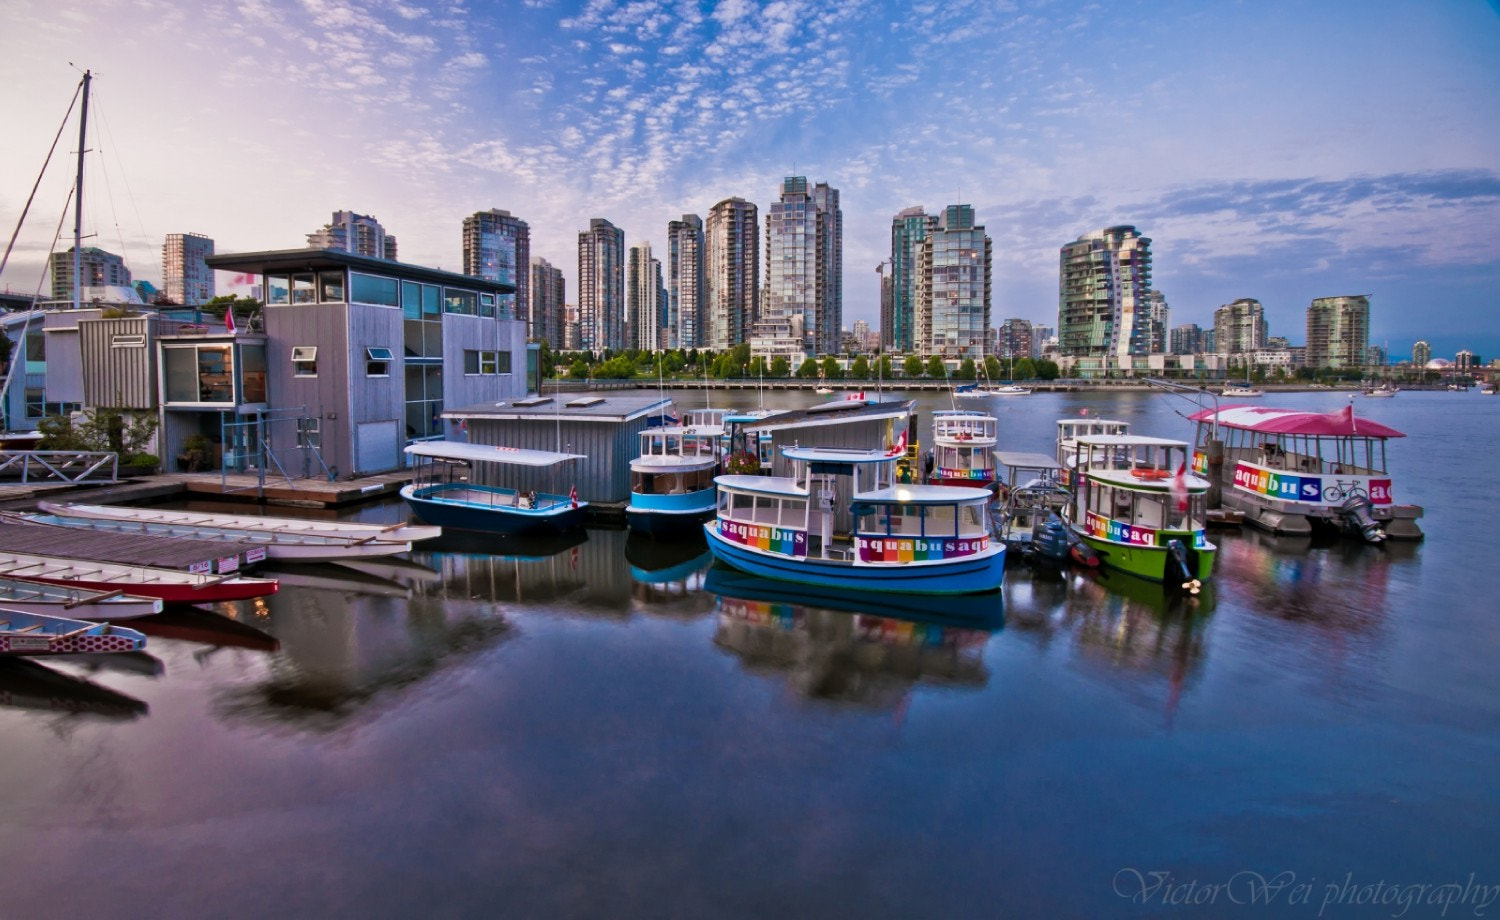 Photograph Water Transport by Victor Wei on 500px